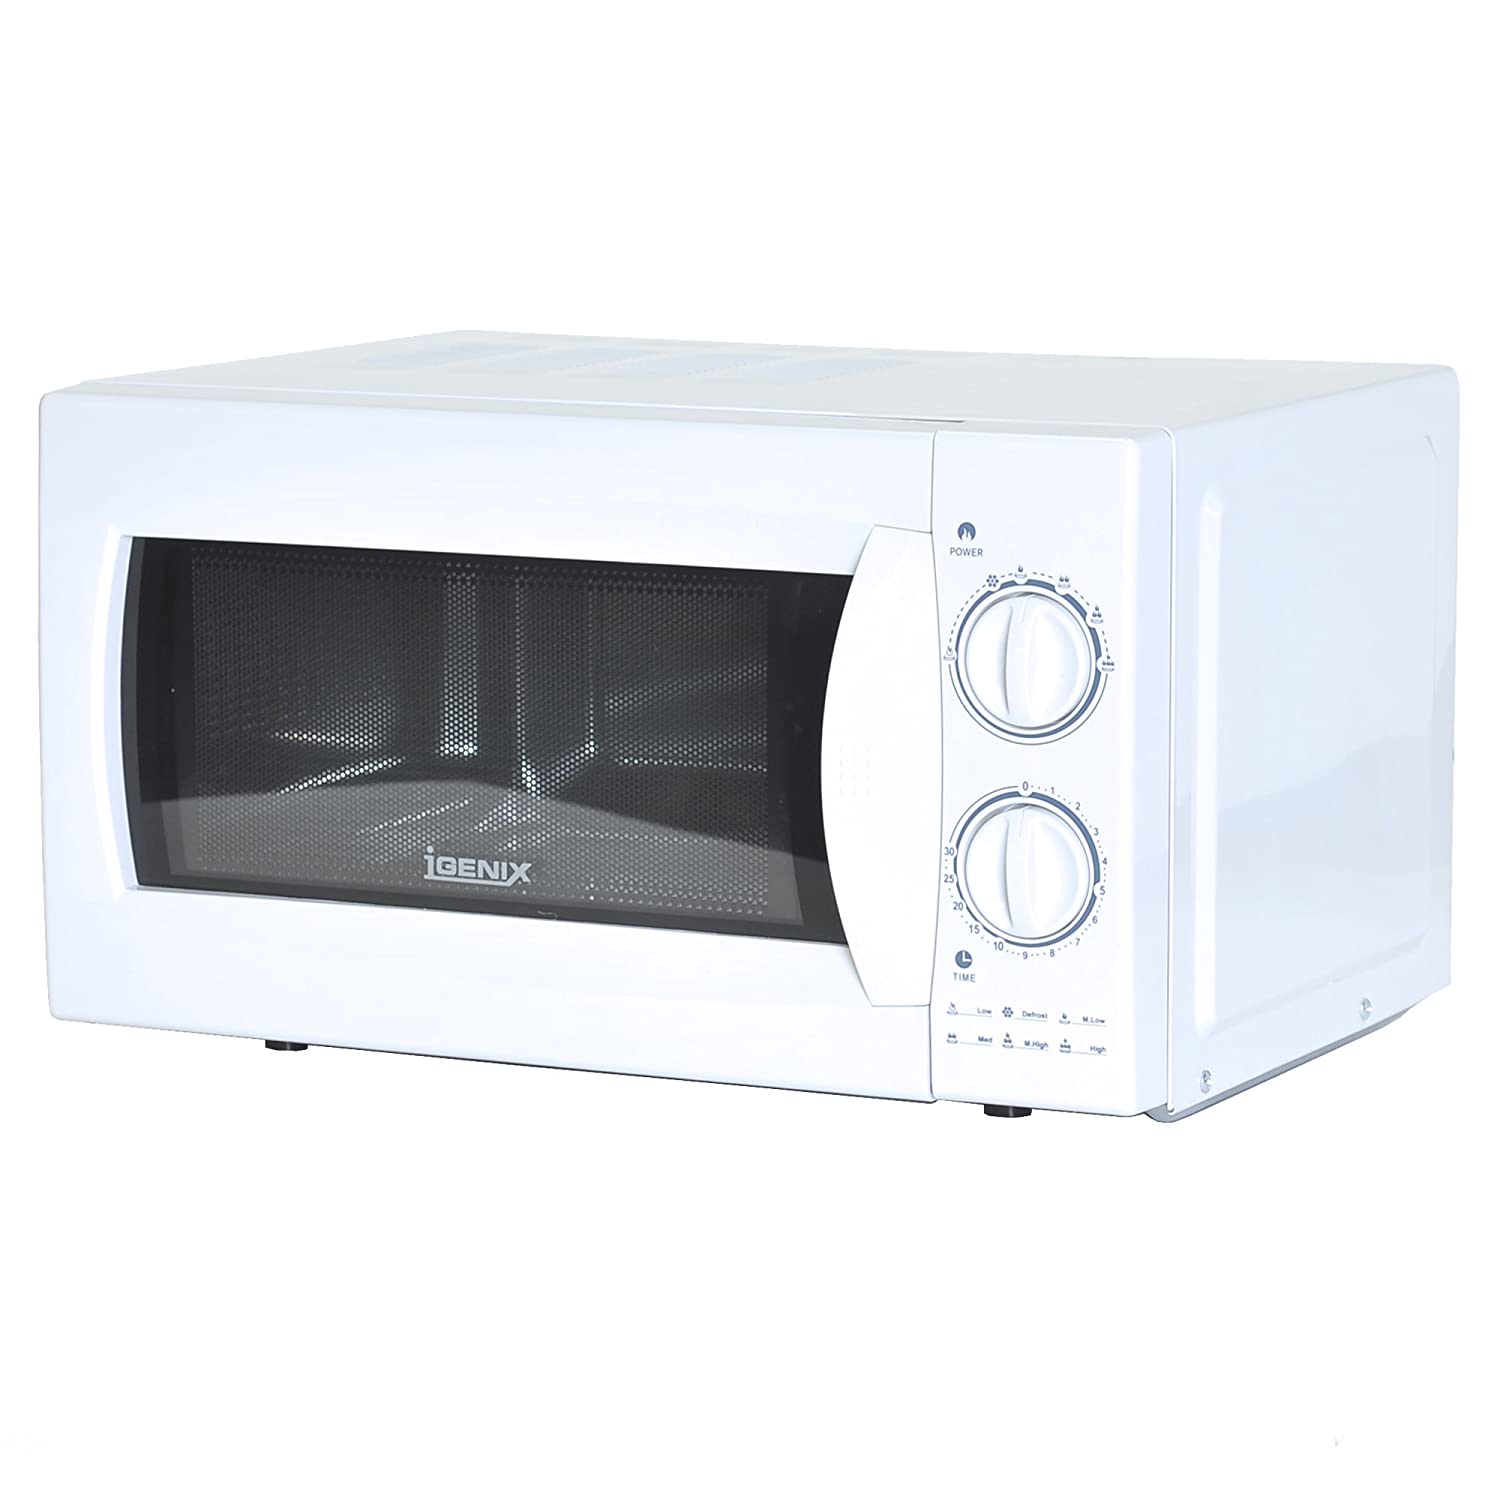 Aldi home sale catalogue special buys stirling 34l microwave oven - Igenix Ig2980 Manual Microwave With Stainless Steel Interior 20 L 800 W White